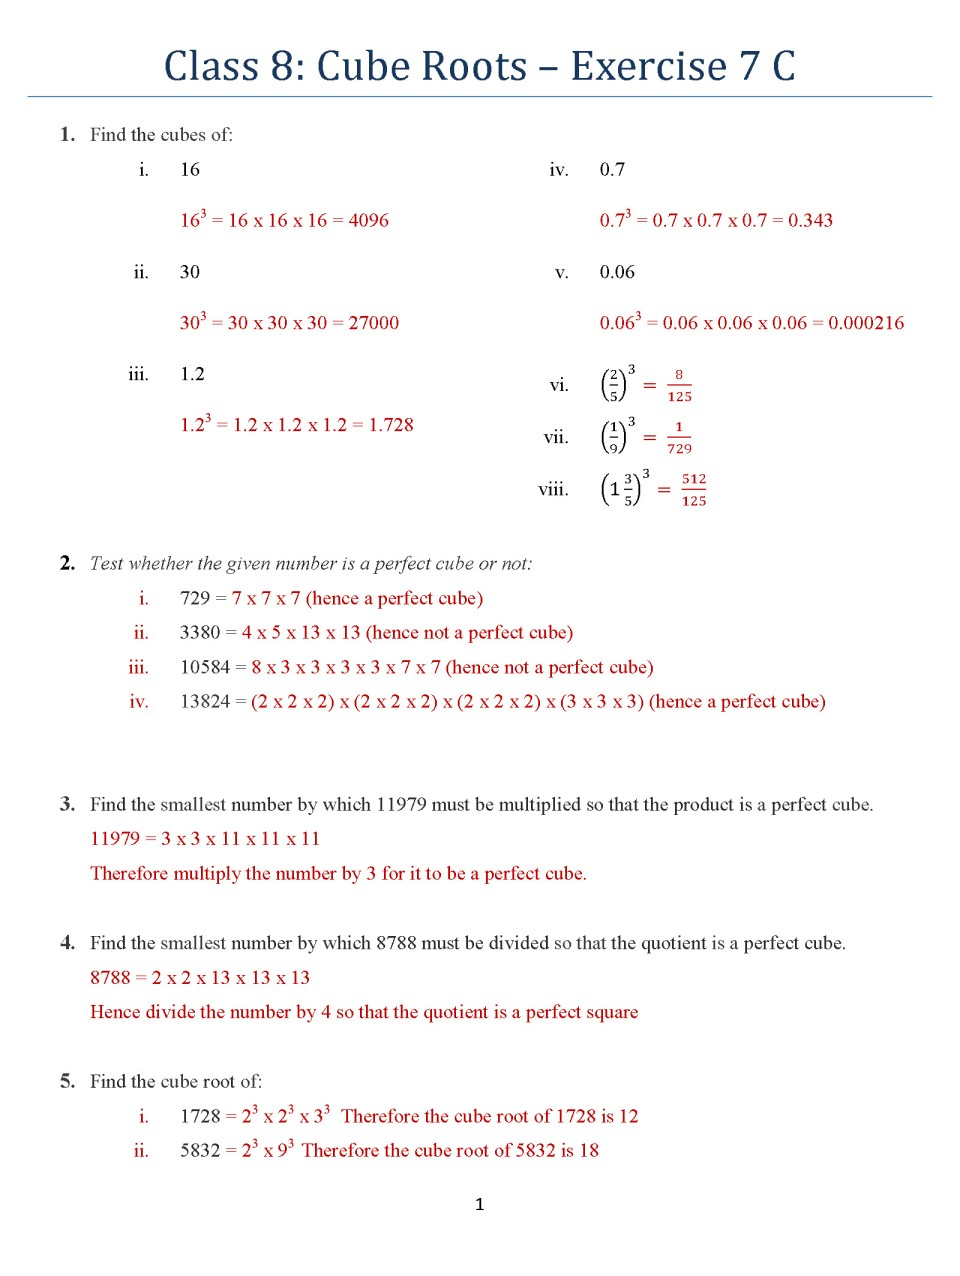 Square Roots And Cube Roots Homework Writing Service